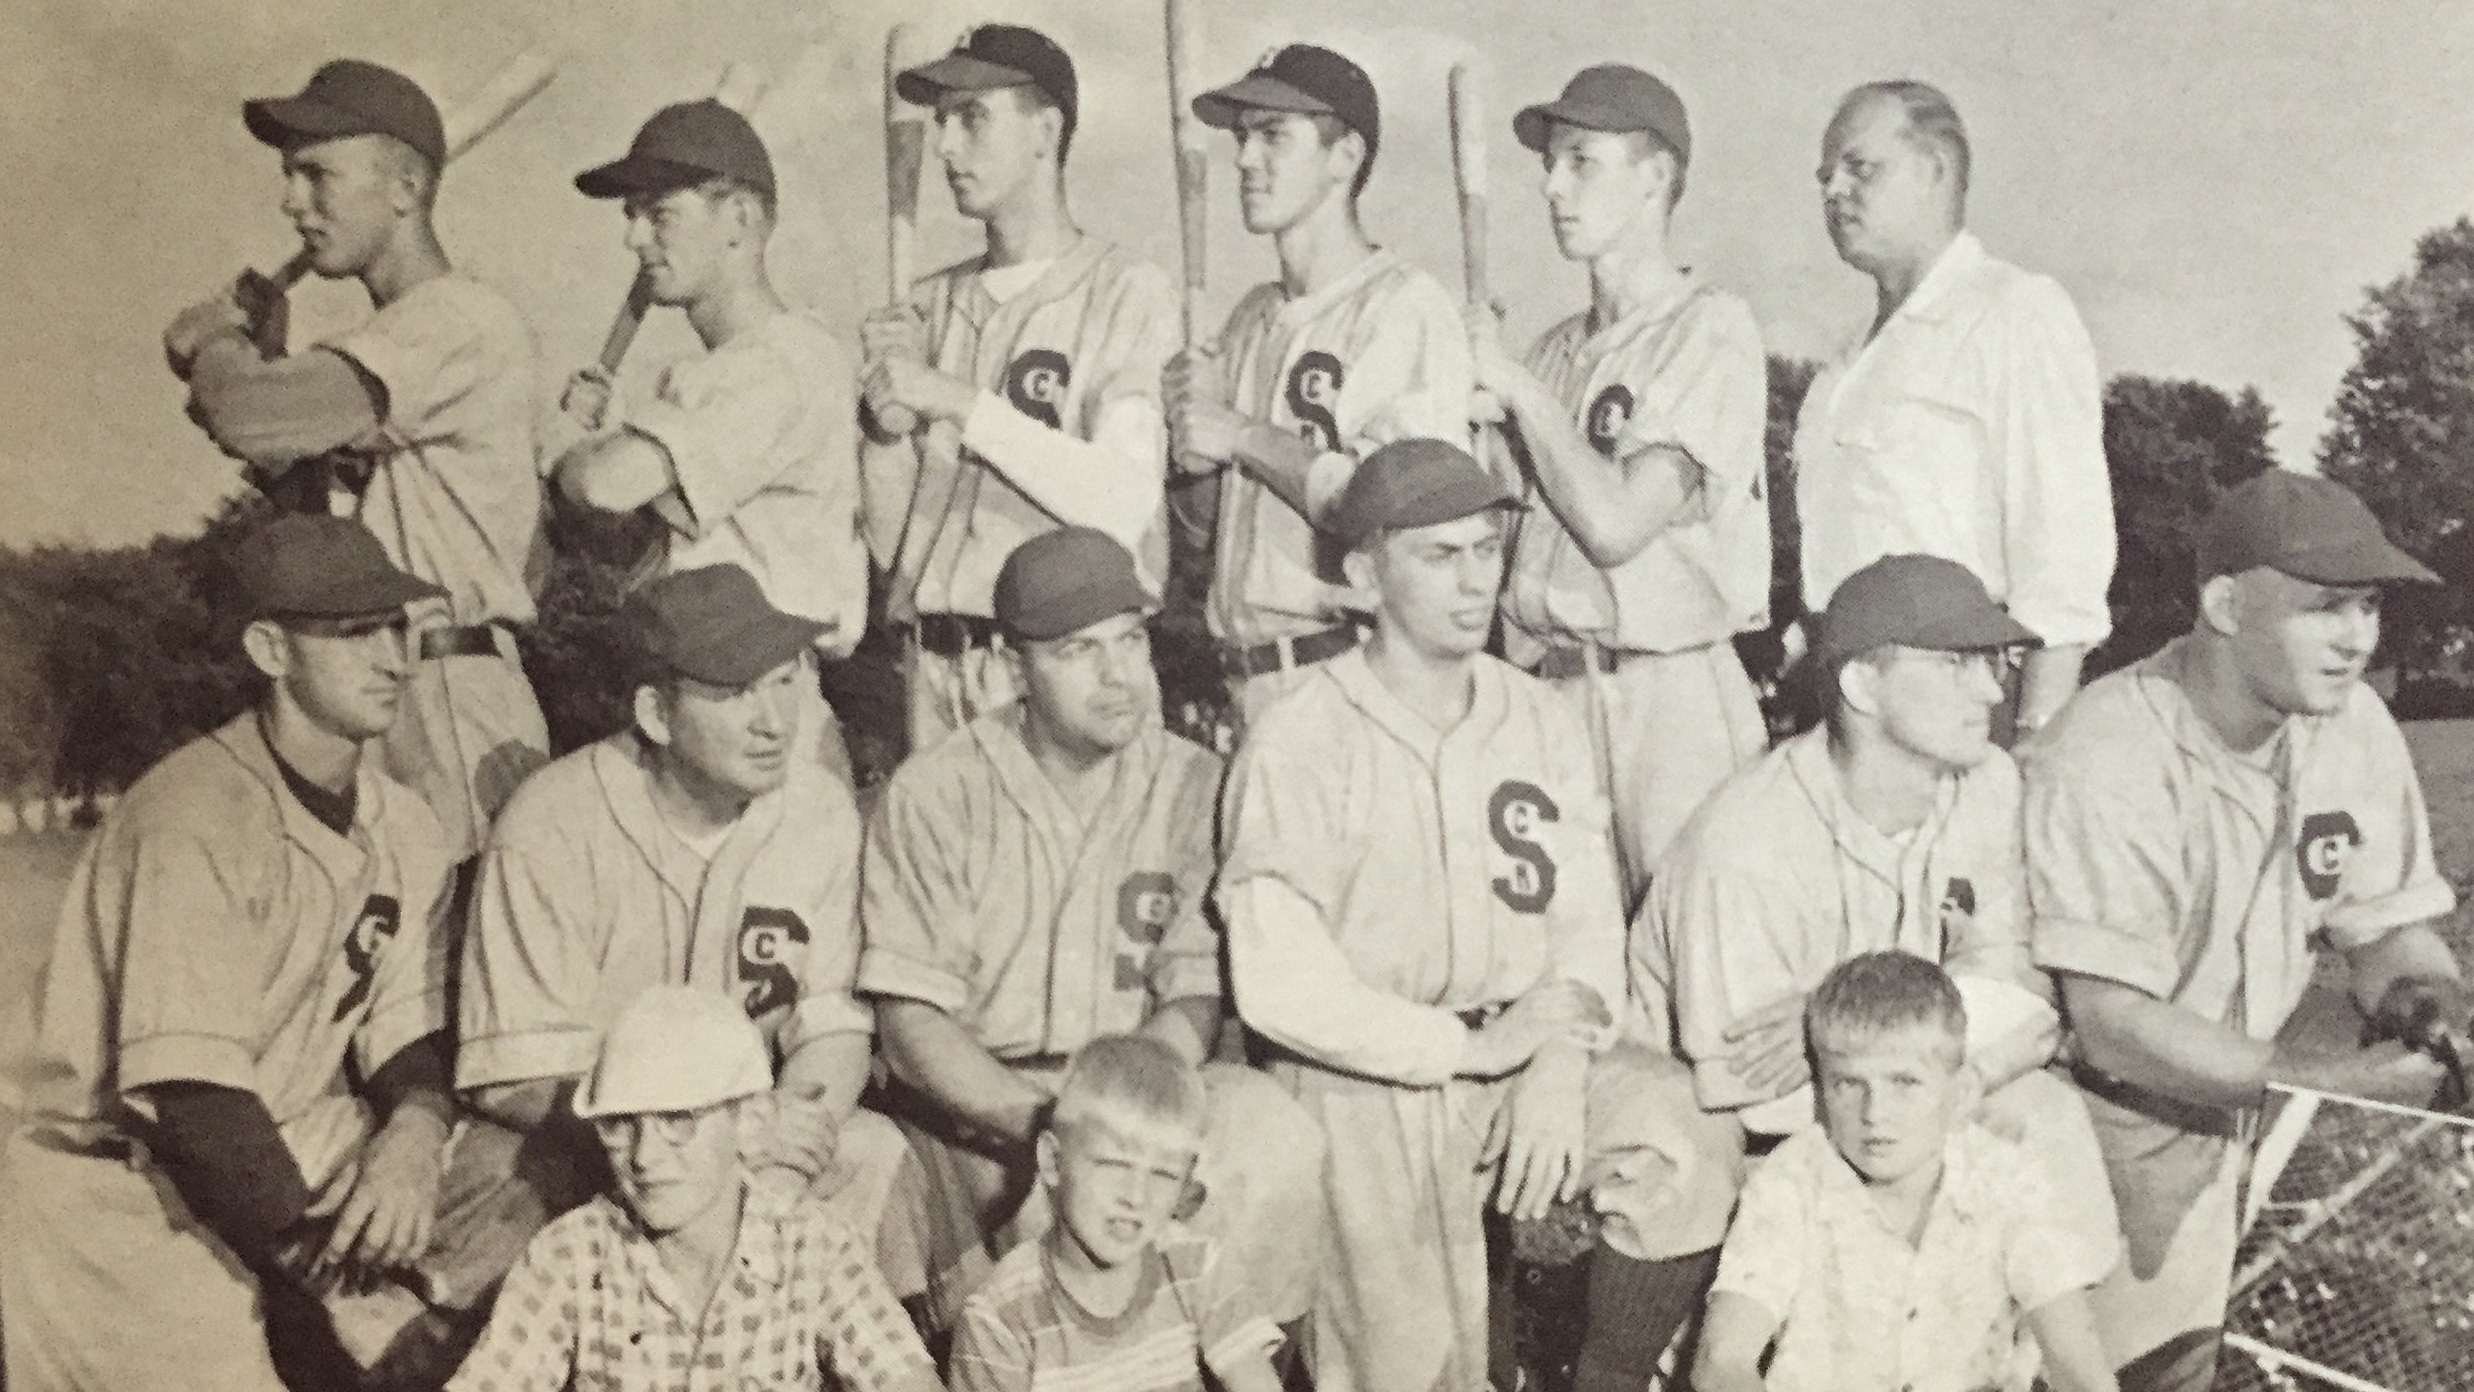 1951 St. Cyril's baseball club at Colt Park.